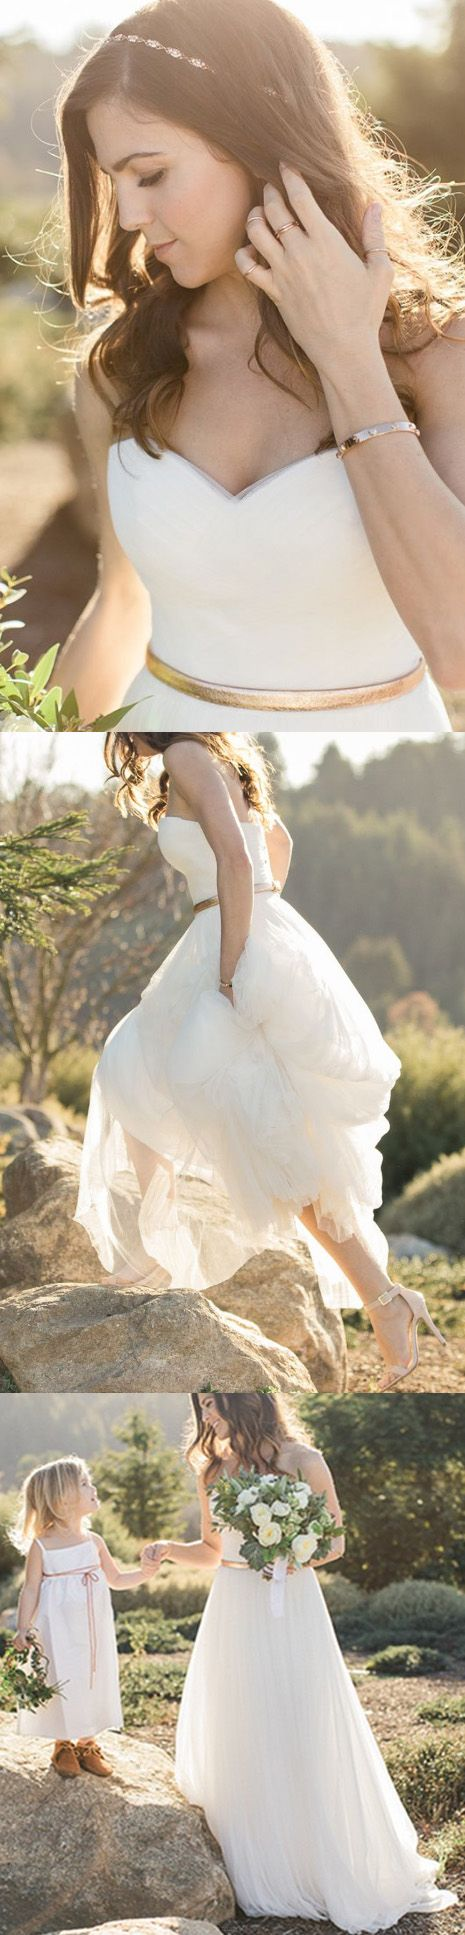 Ivory Wedding Dresses, Wedding dresses Sash, Wedding dresses Sale, Long Wedding Dresses, Tulle Wedding dresses, Wedding Dresses On Sale, Dresses On Sale, Floor Length Dresses, Zipper Wedding Dresses, Belt/Sash/Ribbon Wedding Dresses, Tulle Wedding Dresses, Floor-length Wedding Dresses